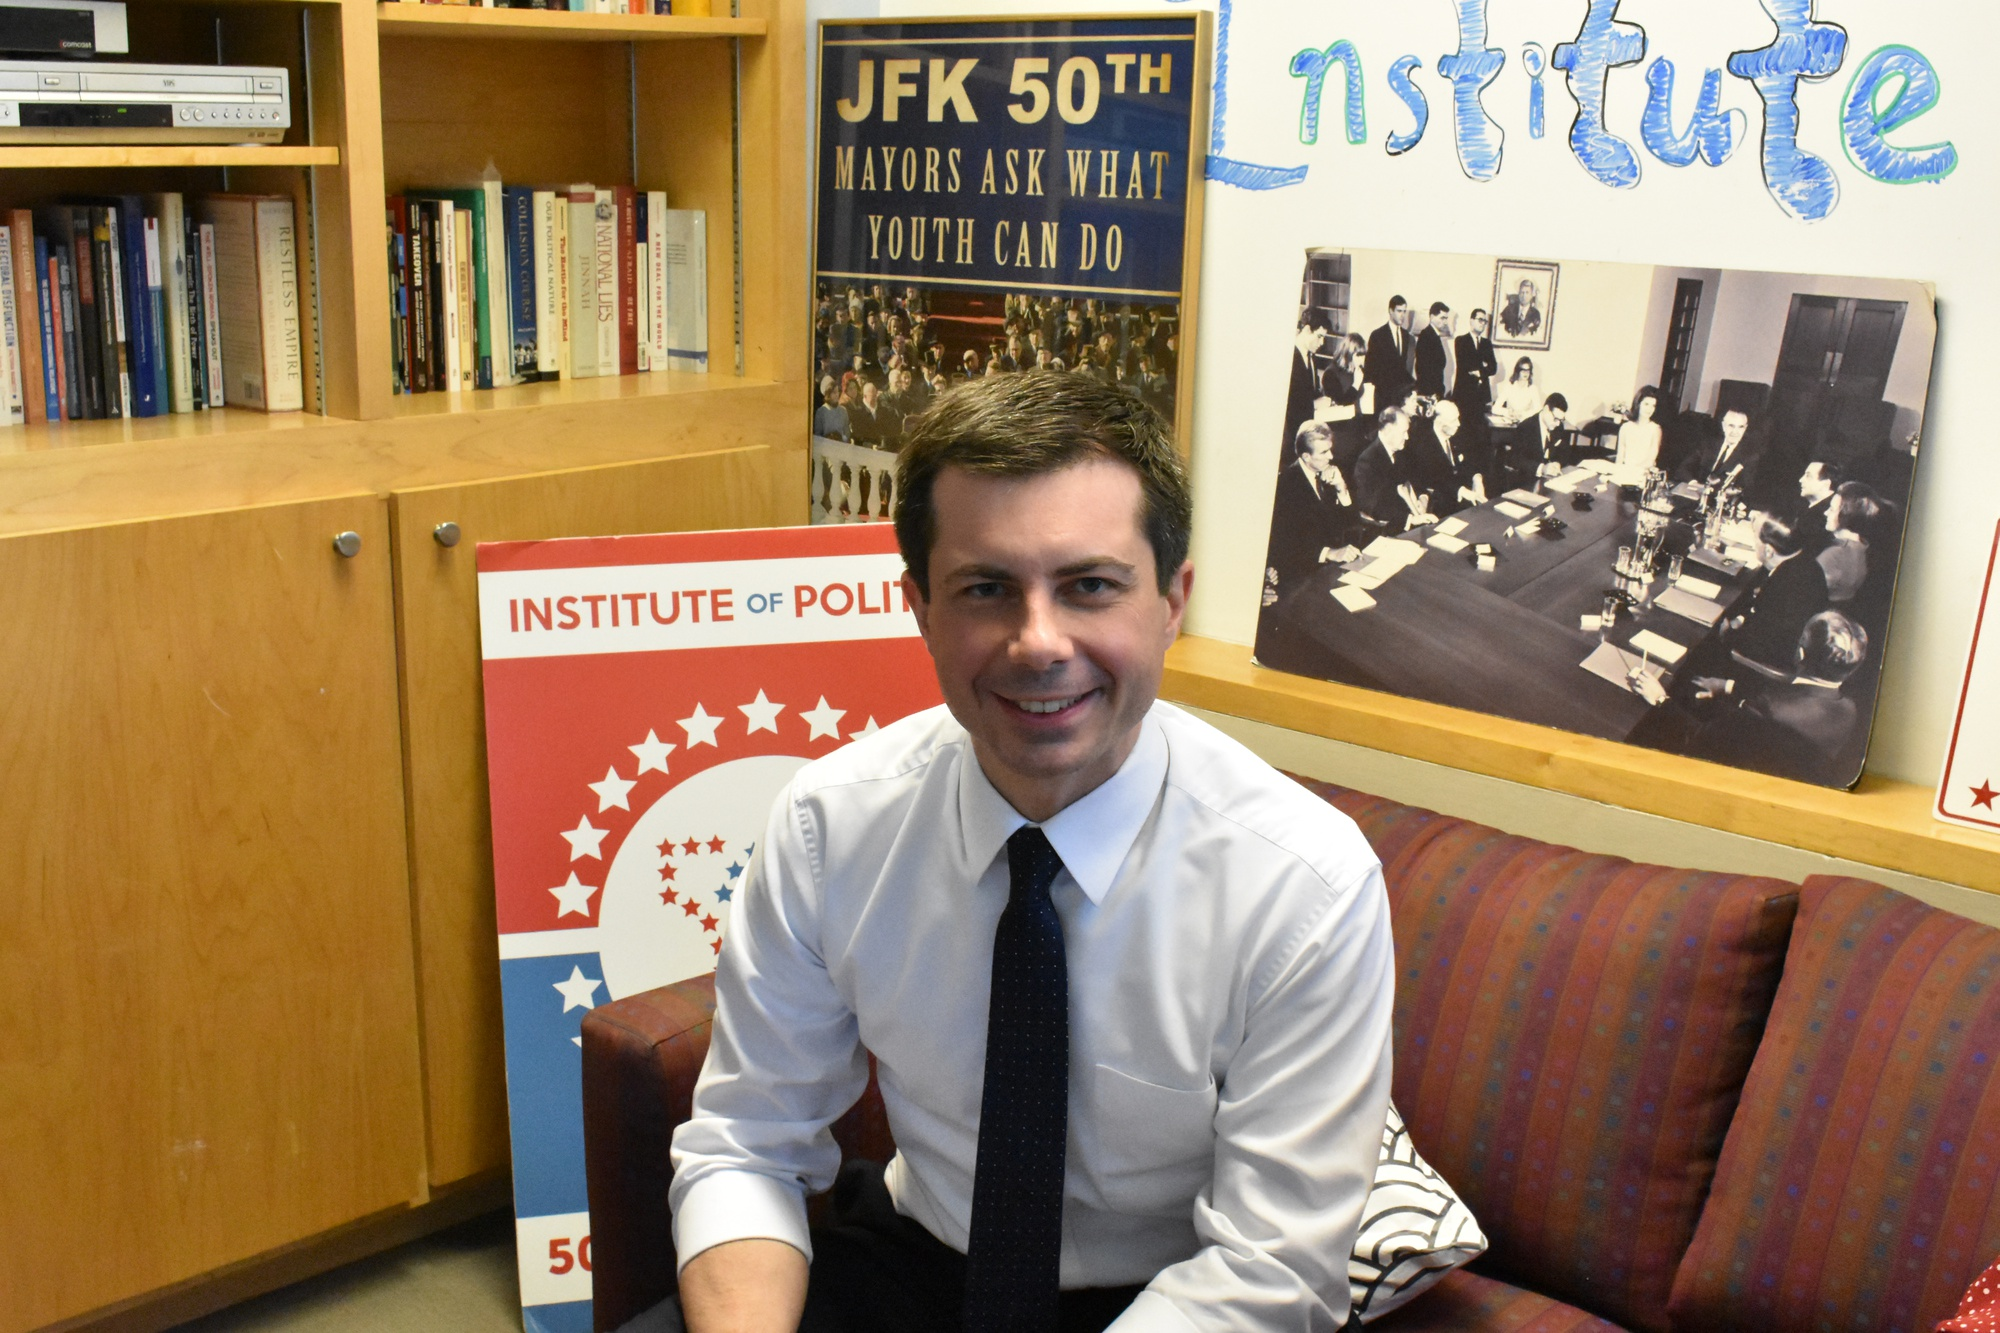 Peter P. M. Buttigieg '04 is by far the youngest presidential candidate for the upcoming election at age 37.